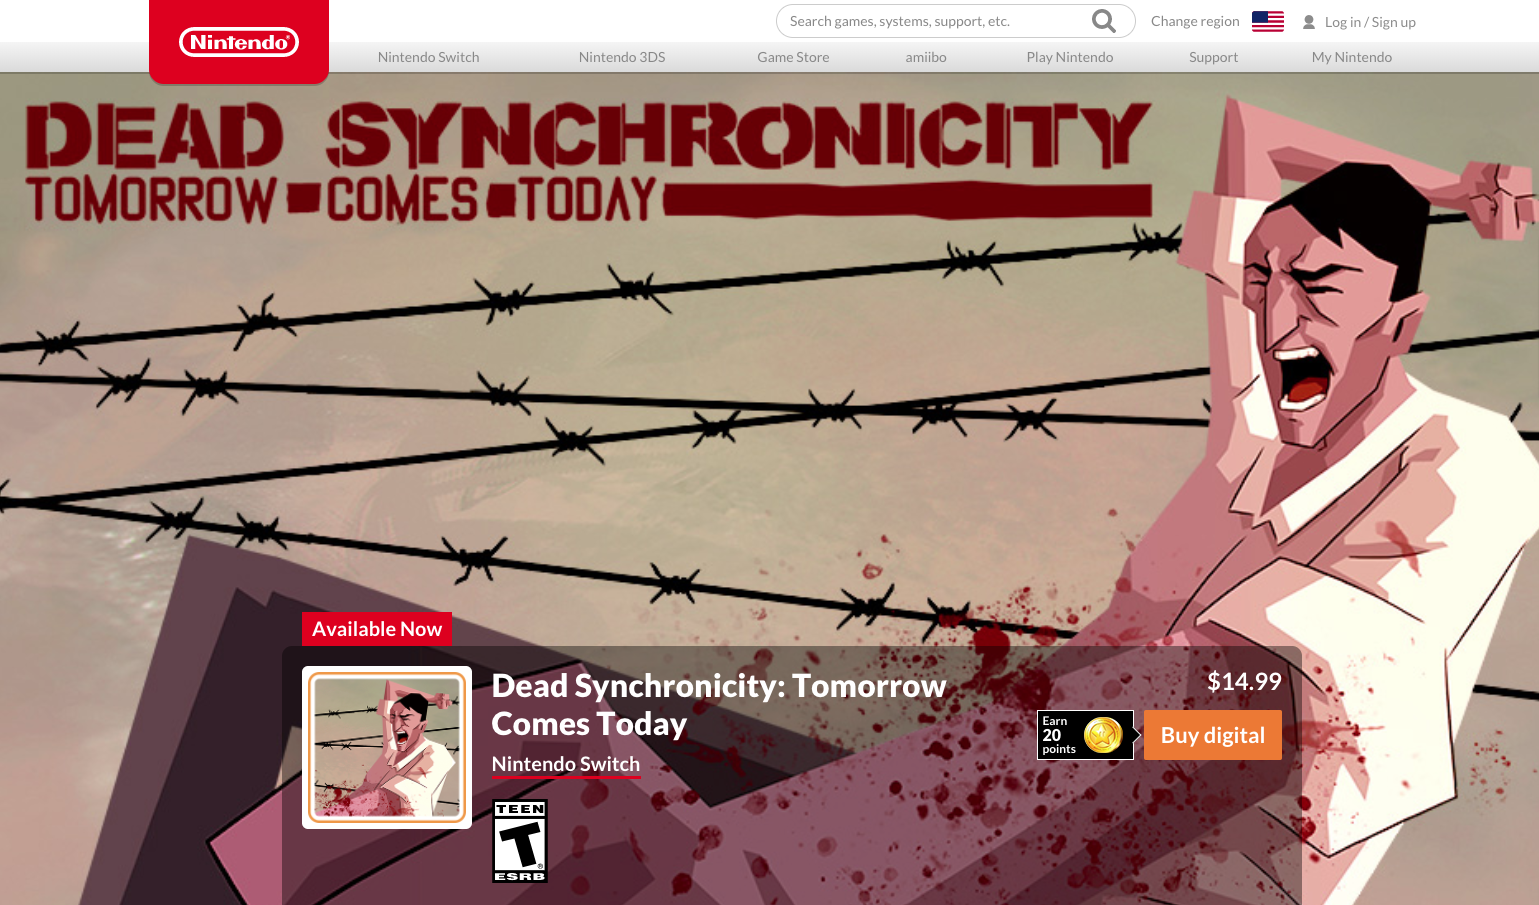 Dead Synchronicity - Nintendo Switch